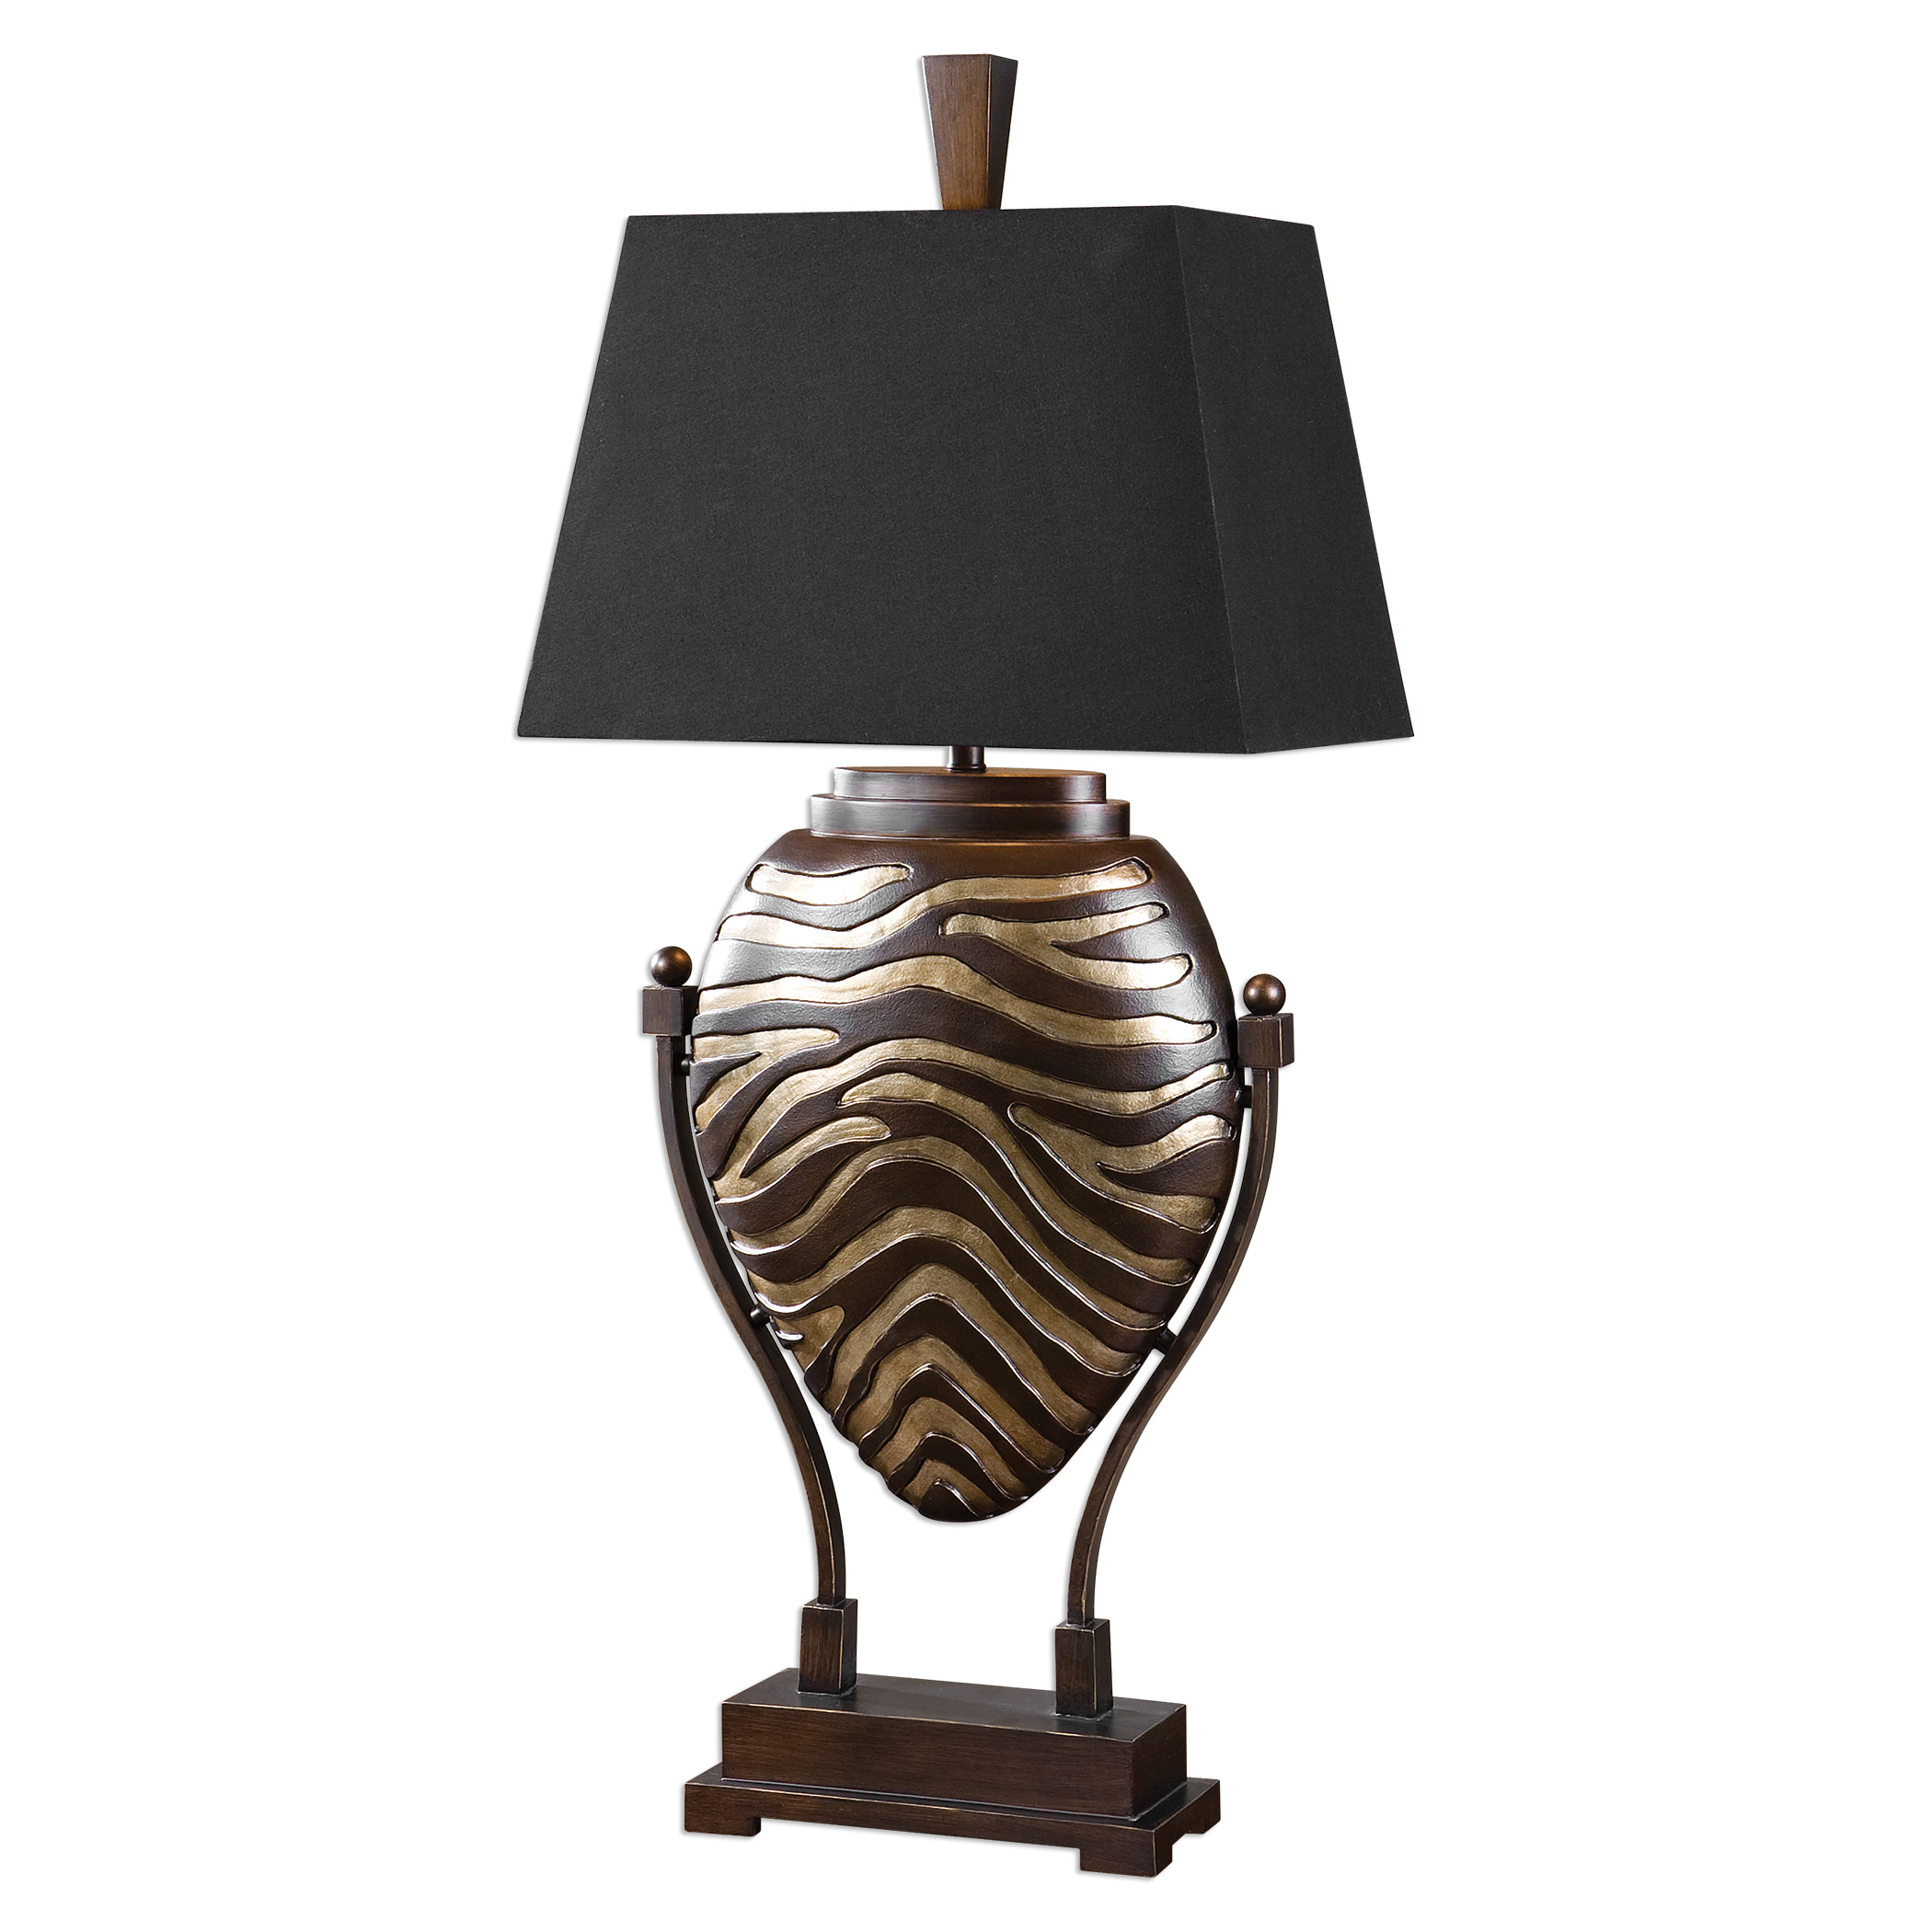 Uttermost Lamps Aguila Dark Bronze Table Lamp - Item Number: 27102